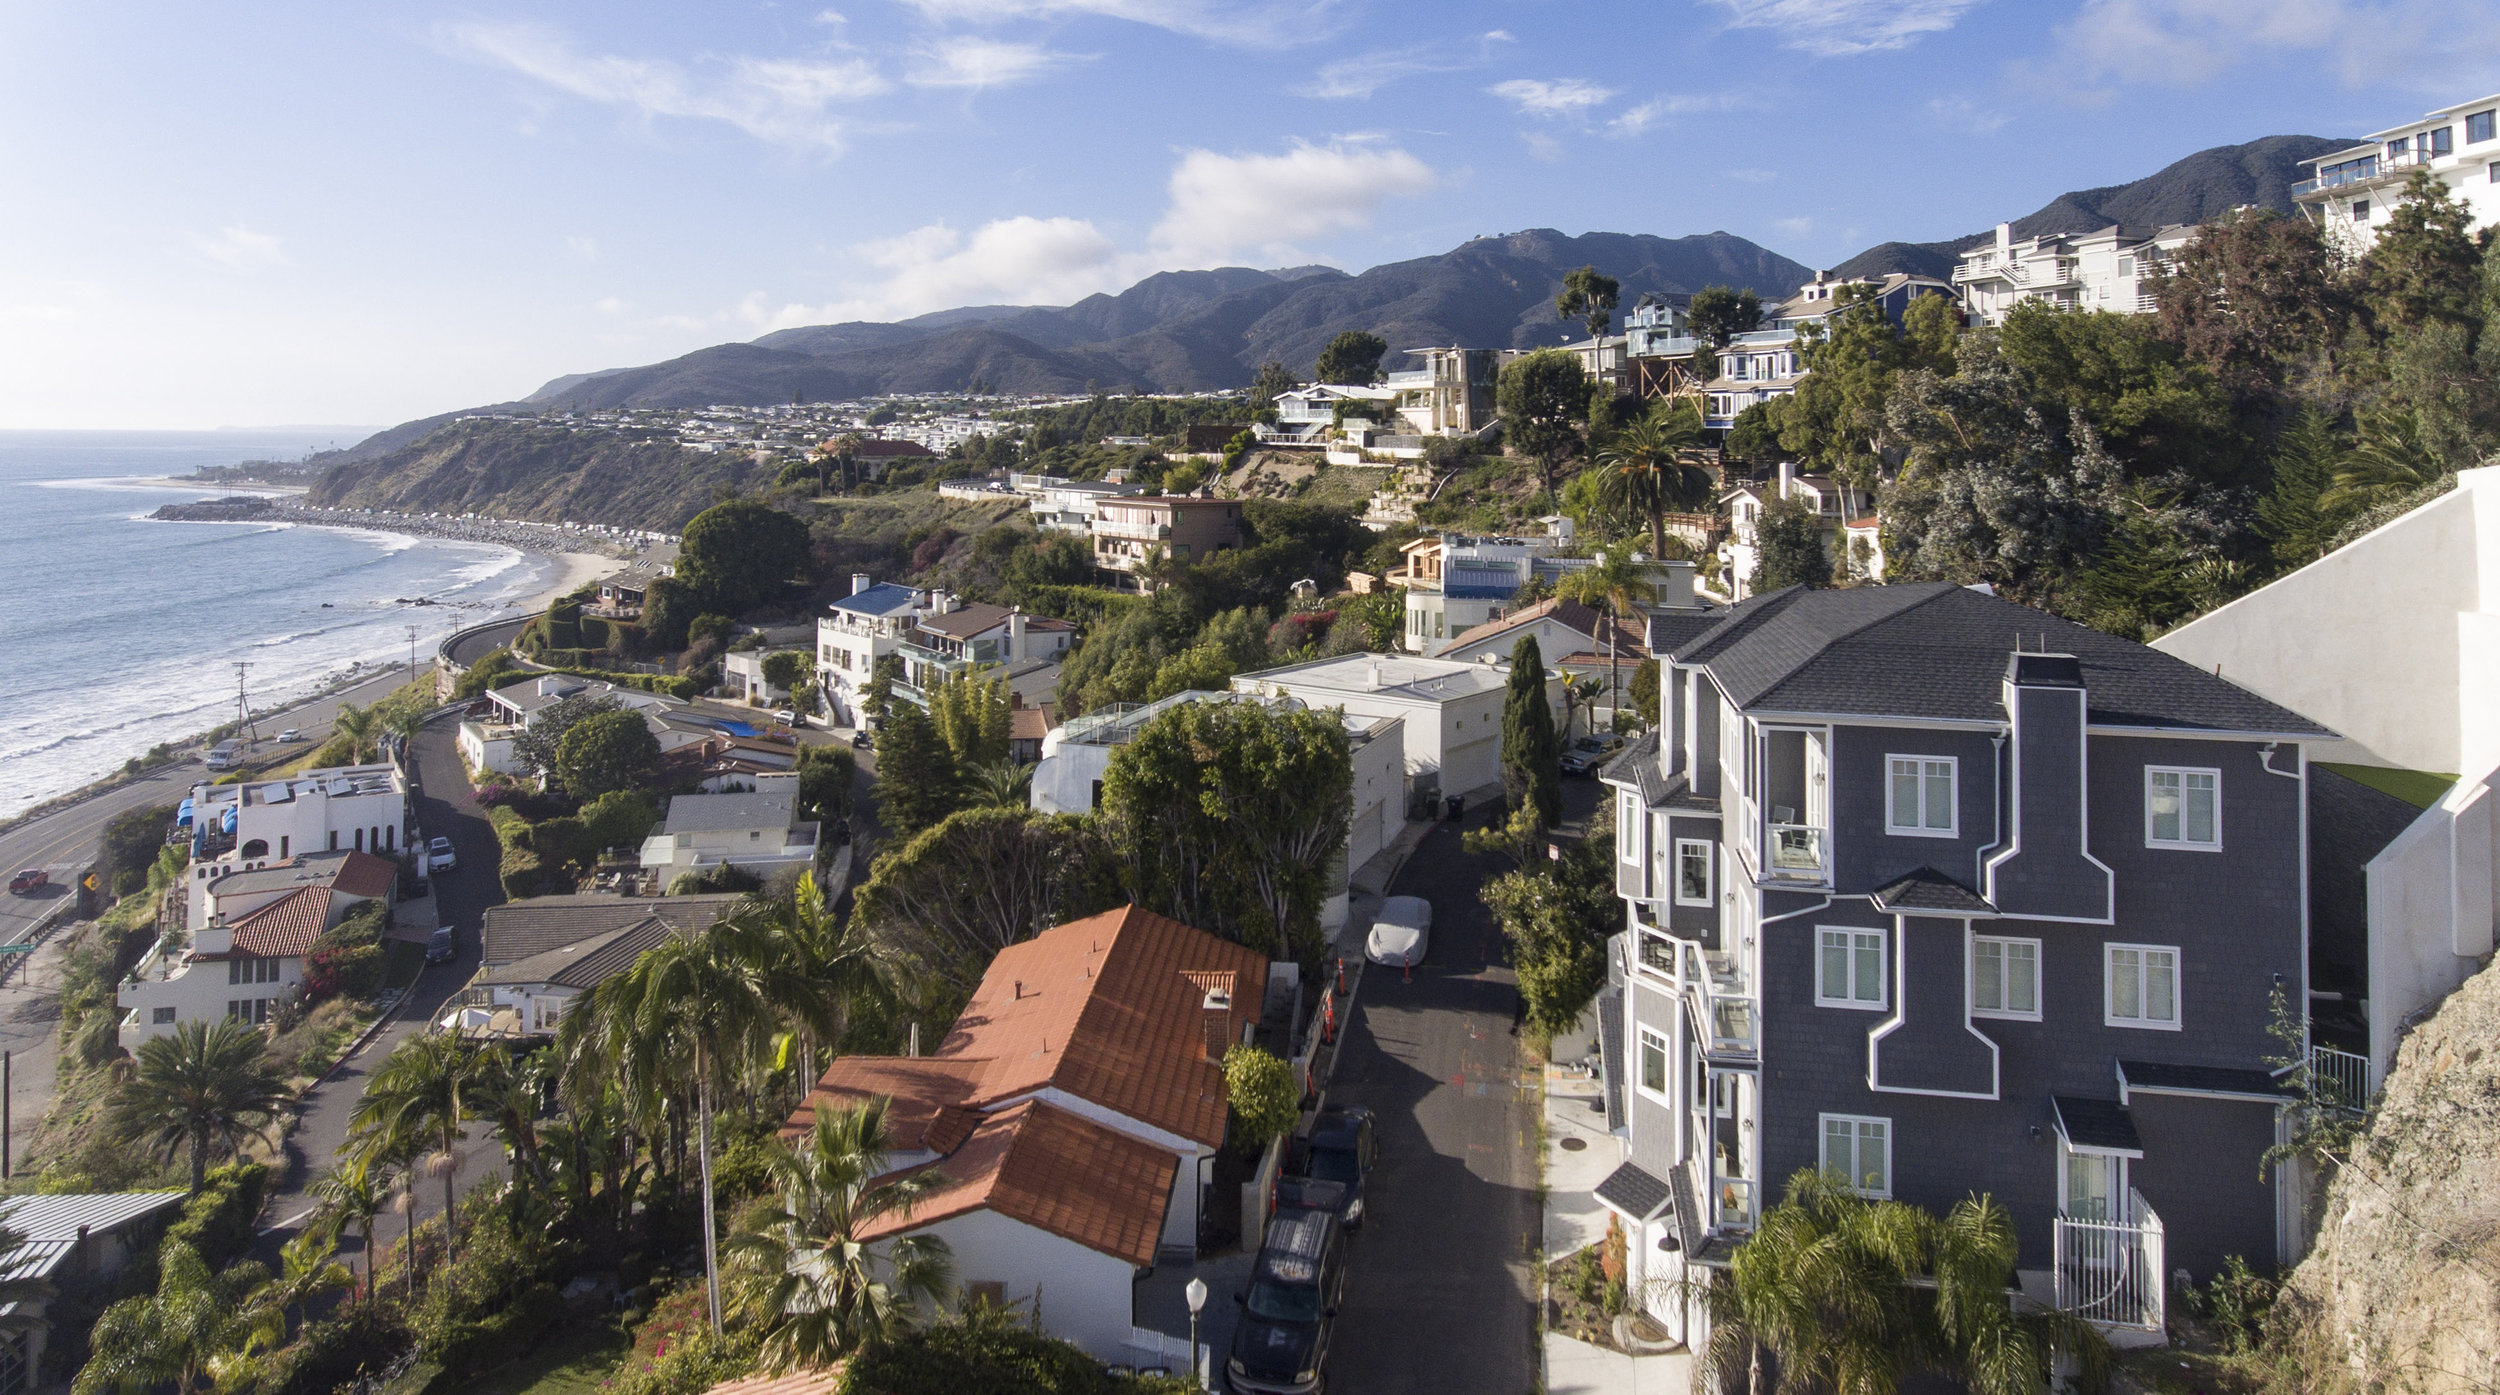 030 Aerial 17819 Castellammare Drive Pacific Palisades For Sale Lease The Malibu Life Team Compass Luxury Real Estate.jpg